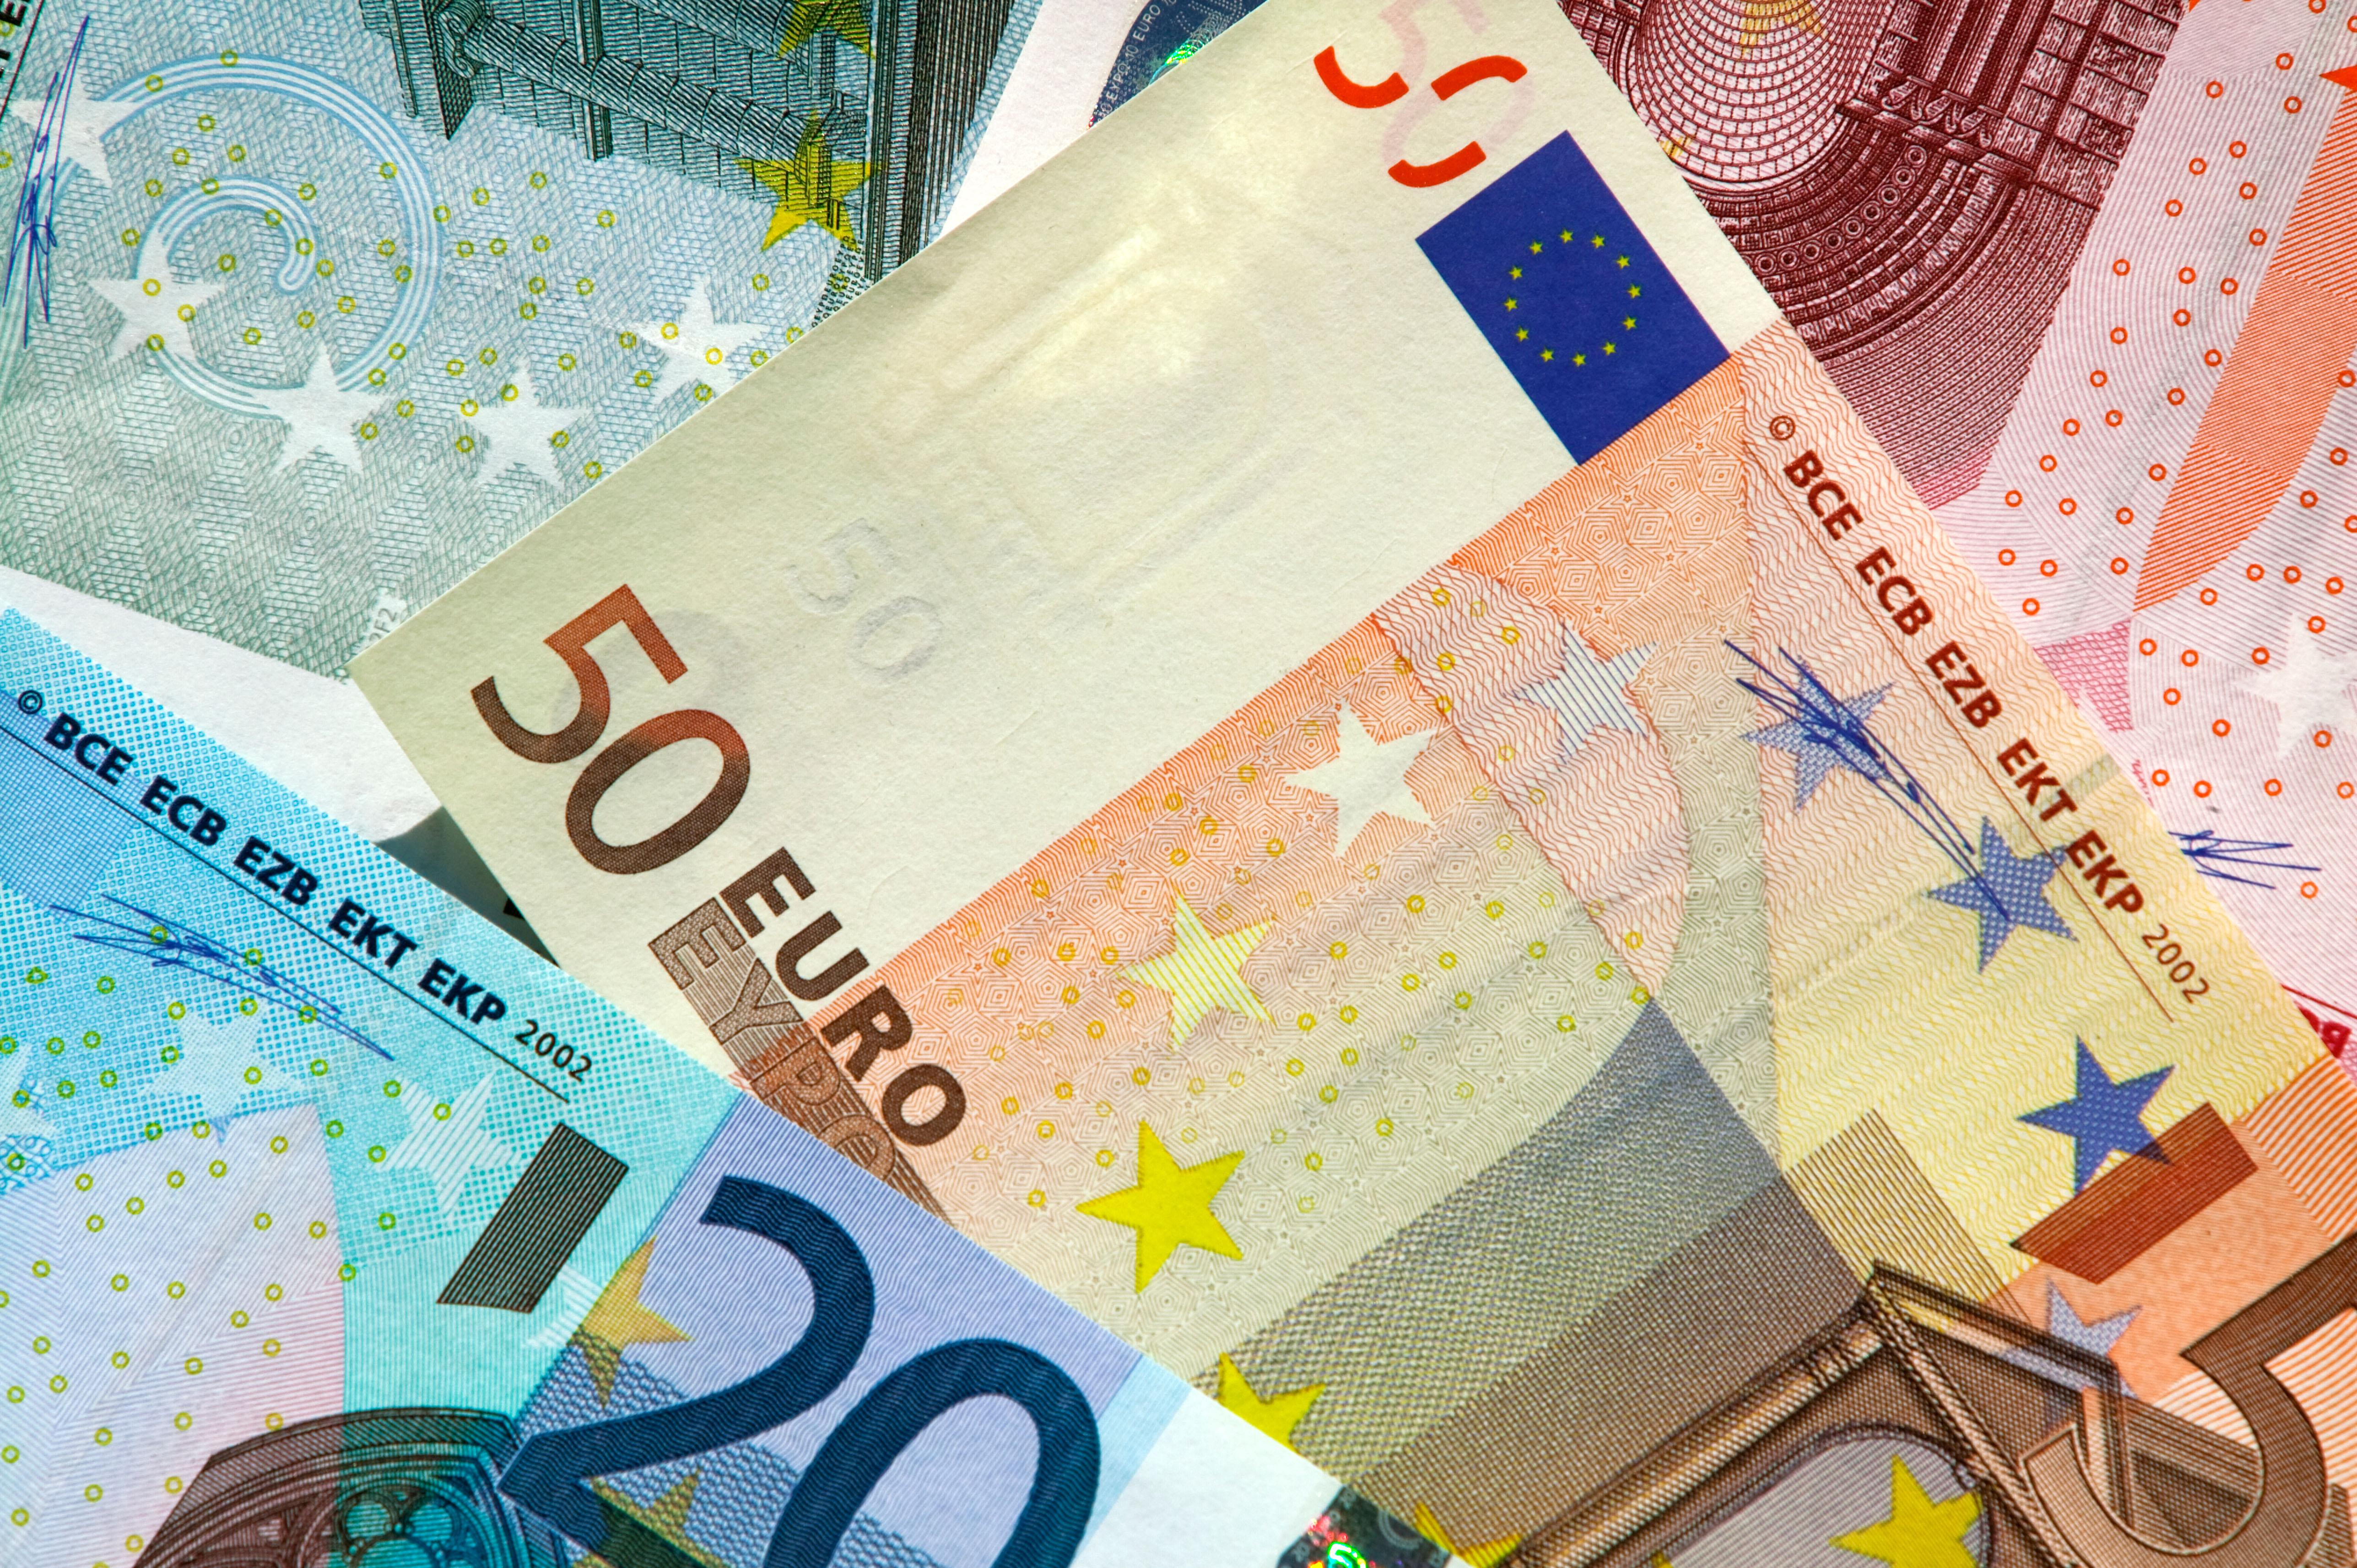 200 Libras A Euros Martin Lewis Reveals Whether You Should Pay In Pounds Or Euros On